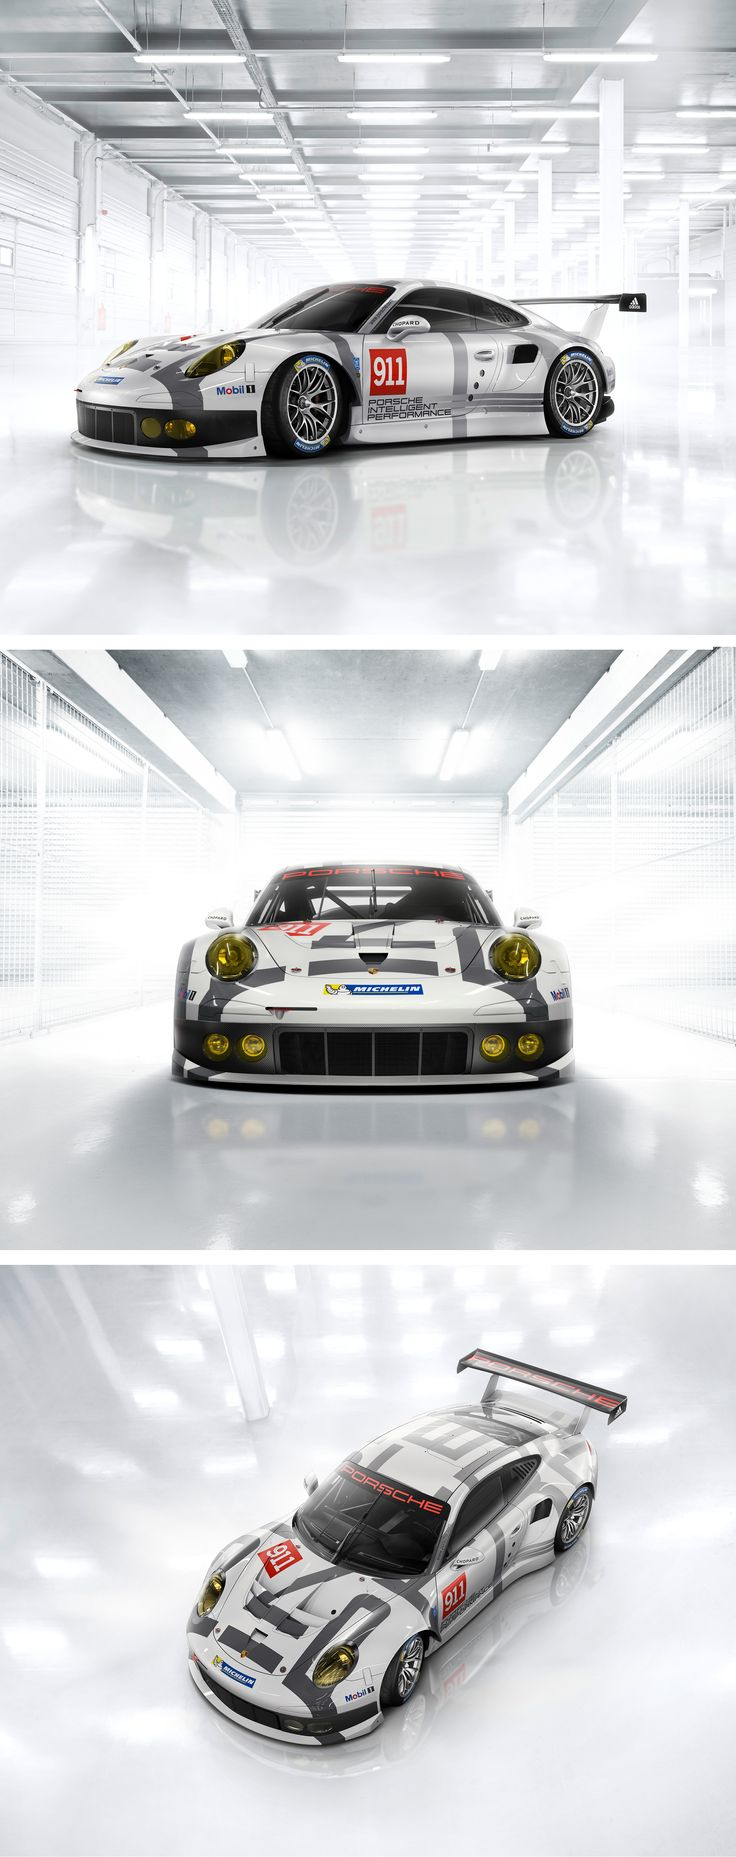 The quintessence of over 30.000 race victories. The ambassador of our brand core. The Porsche 911 RSR.